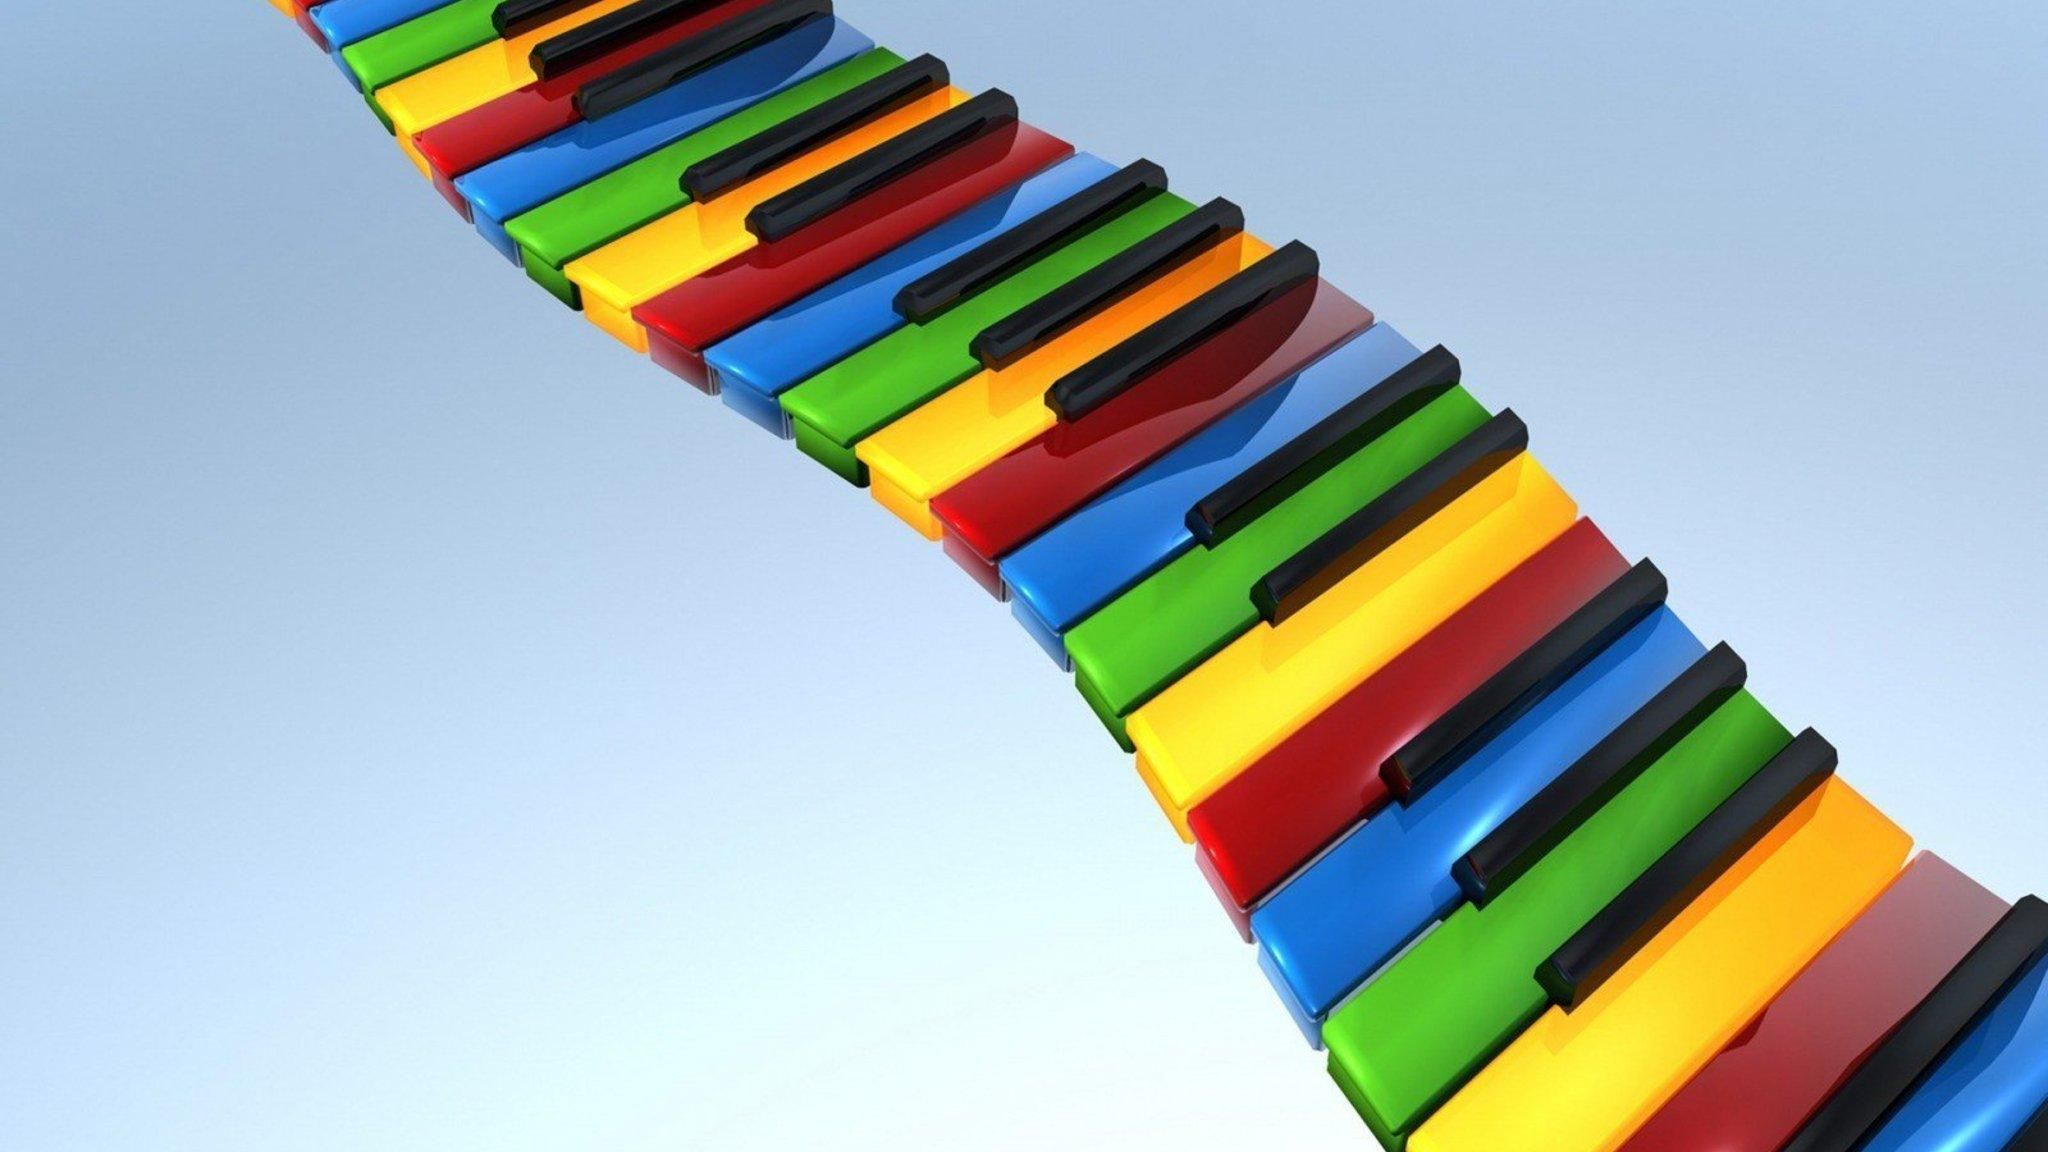 2048x1152 Colorful Piano 2048x1152 Resolution HD 4k Wallpapers ...